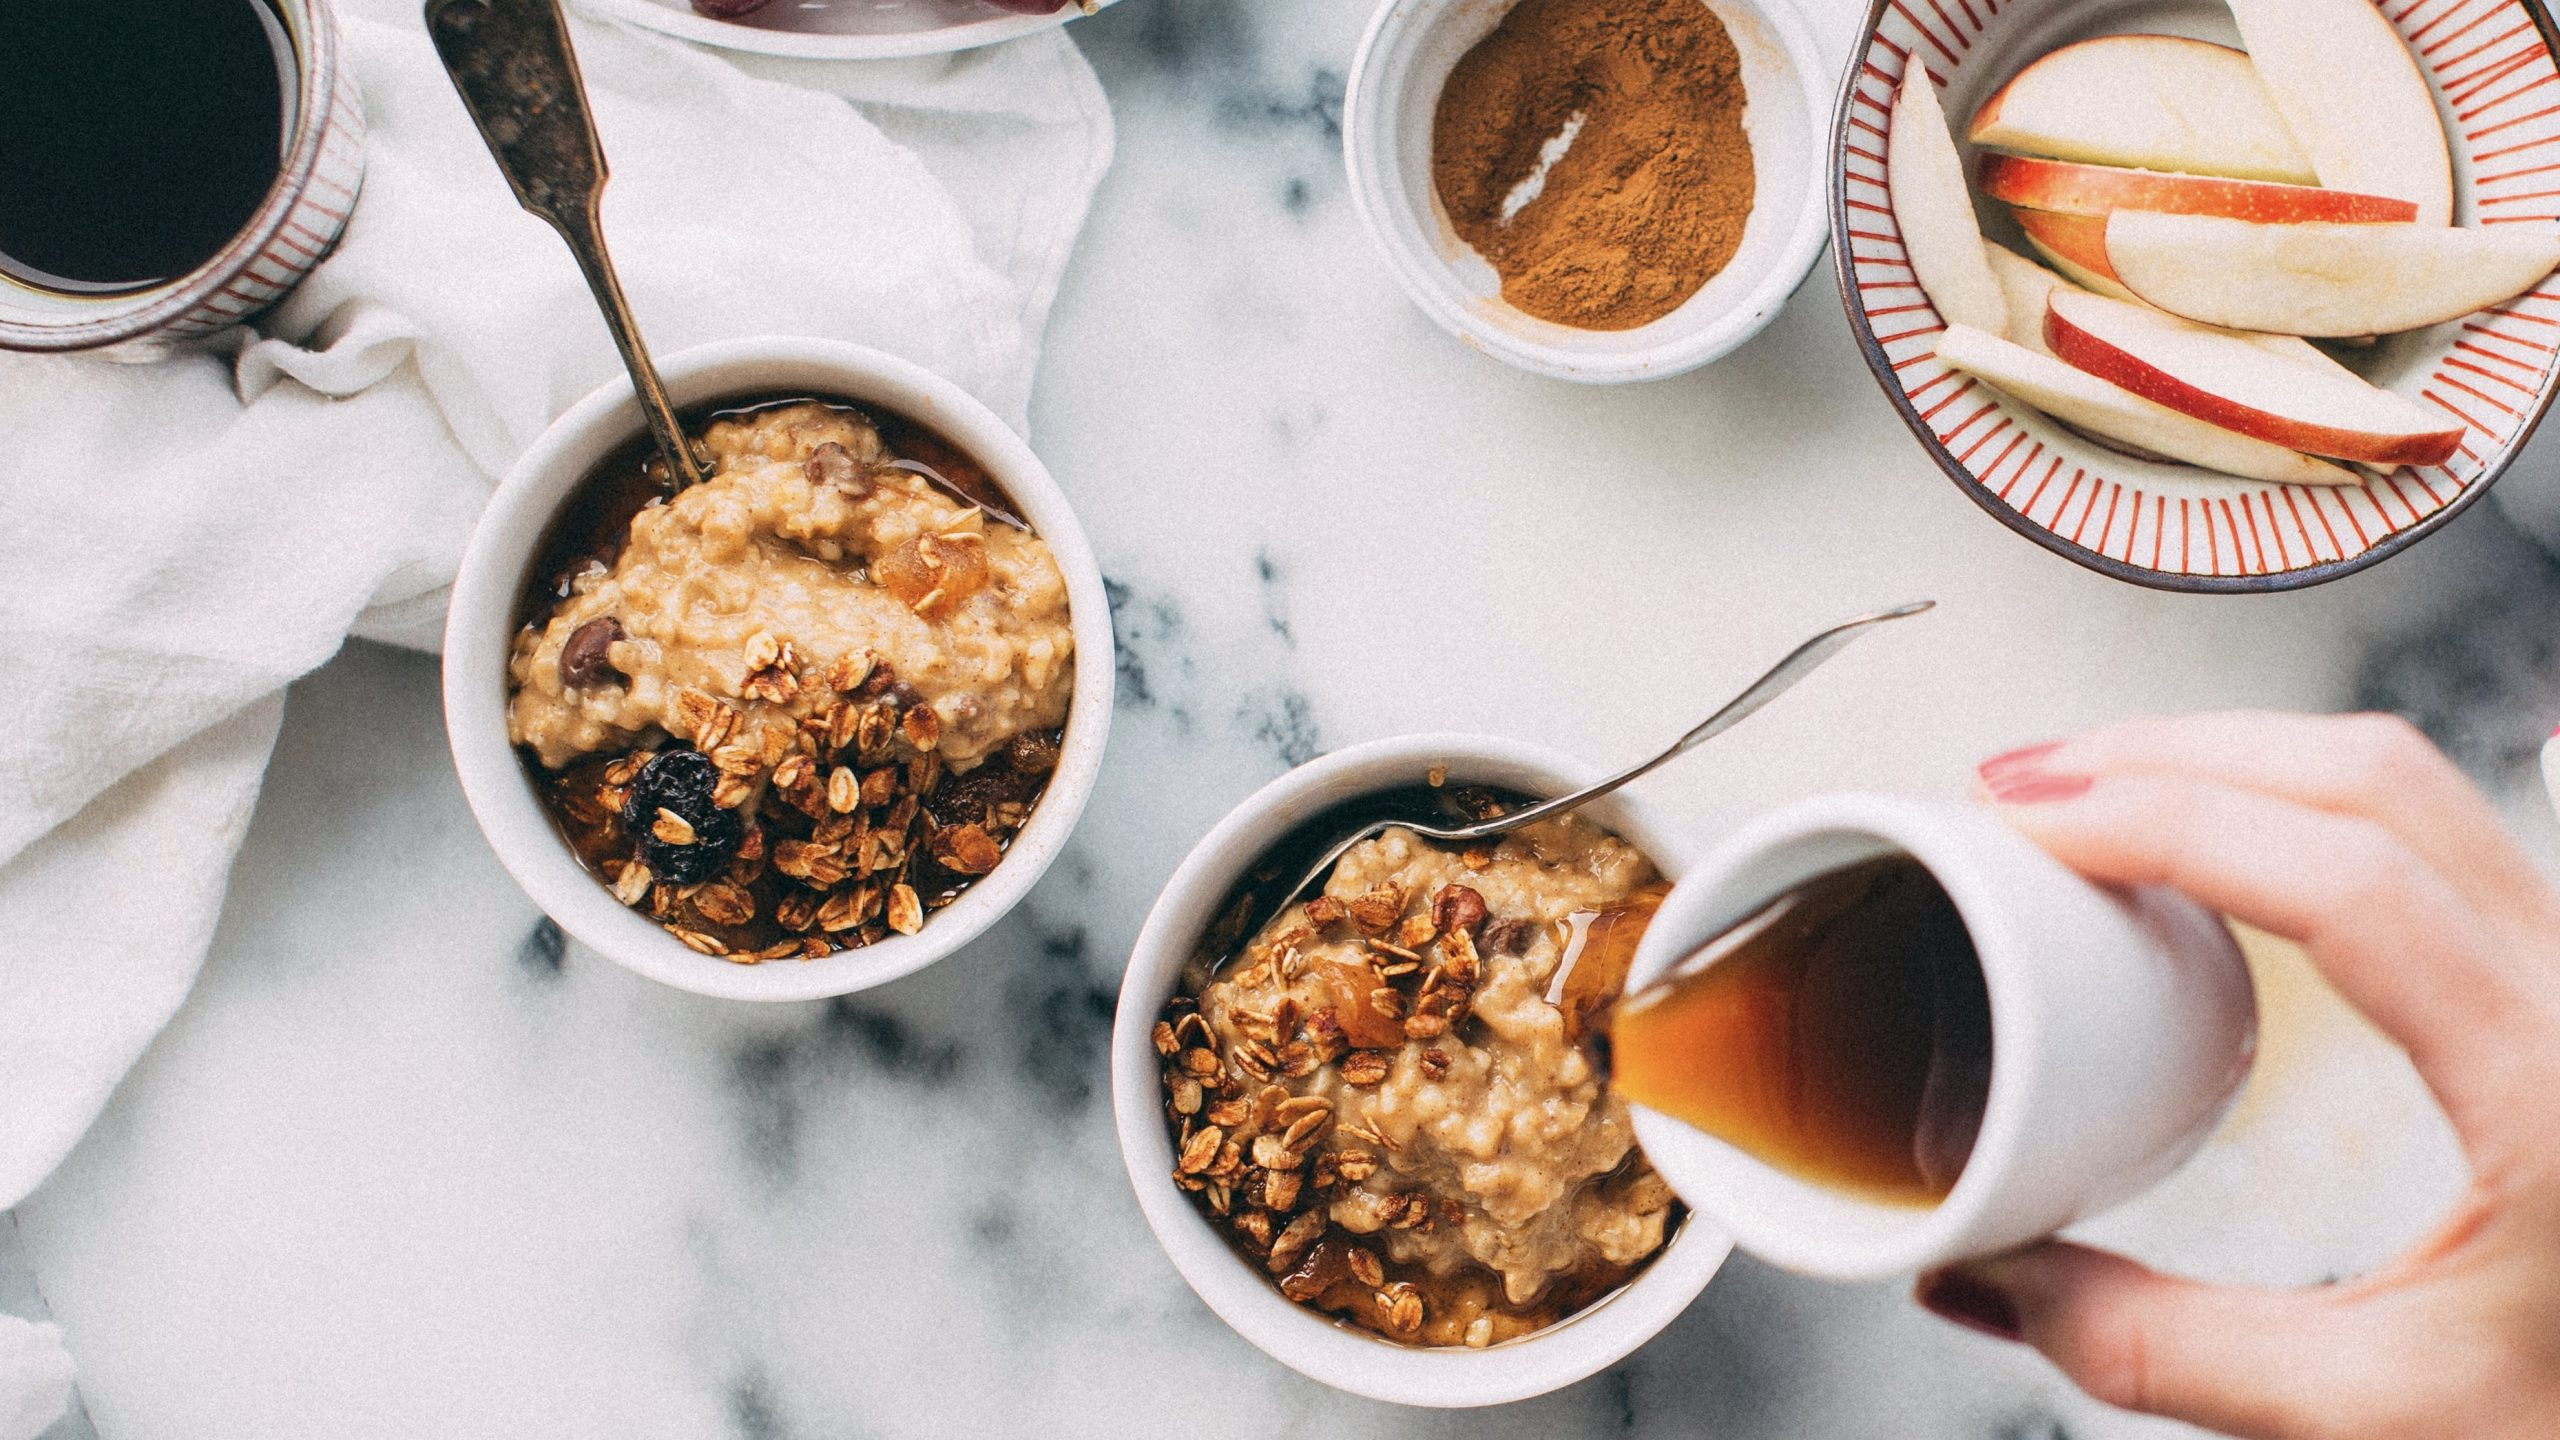 Syrup is poured over bowl of overnight oats at a breakfast set up (coffee, apple slices)